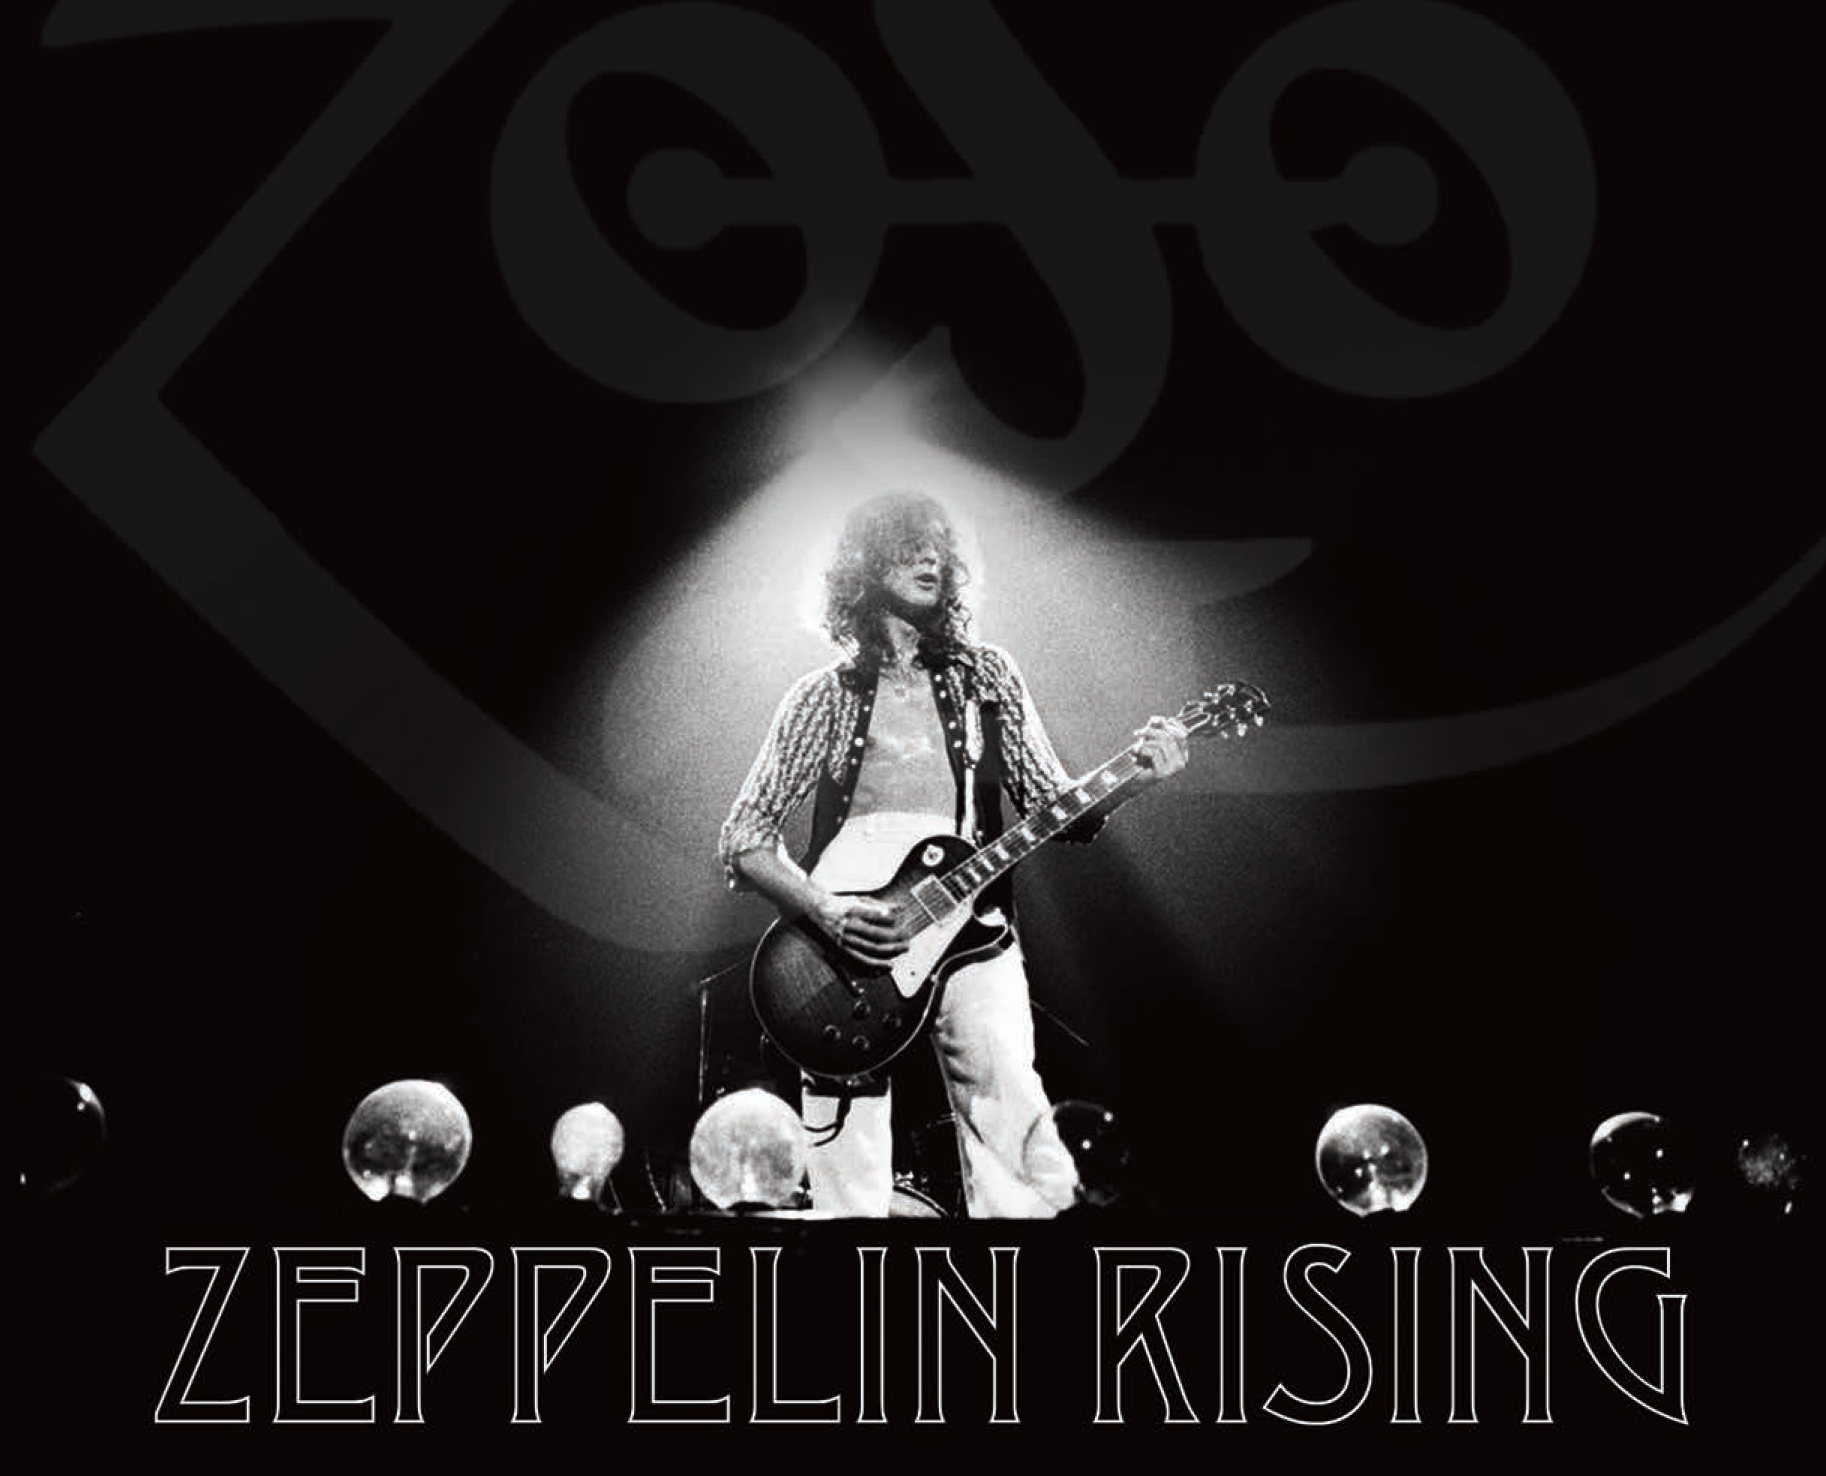 This is the story of Jimmy Page and how he formed perhaps the greatest rock band the world will ever know, Led Zeppelin. Page is revered as a legendary guitarist and songwriter, adored by millions of fans around the world, but few people know what he had to overcome to accomplish his dreams. He knew what music he wanted to play and who he wanted to collaborate with to make his vision a reality. This is the story of how he did it.Jimmy started playing guitar at the age of 12, learning to play by ear. Elvis'